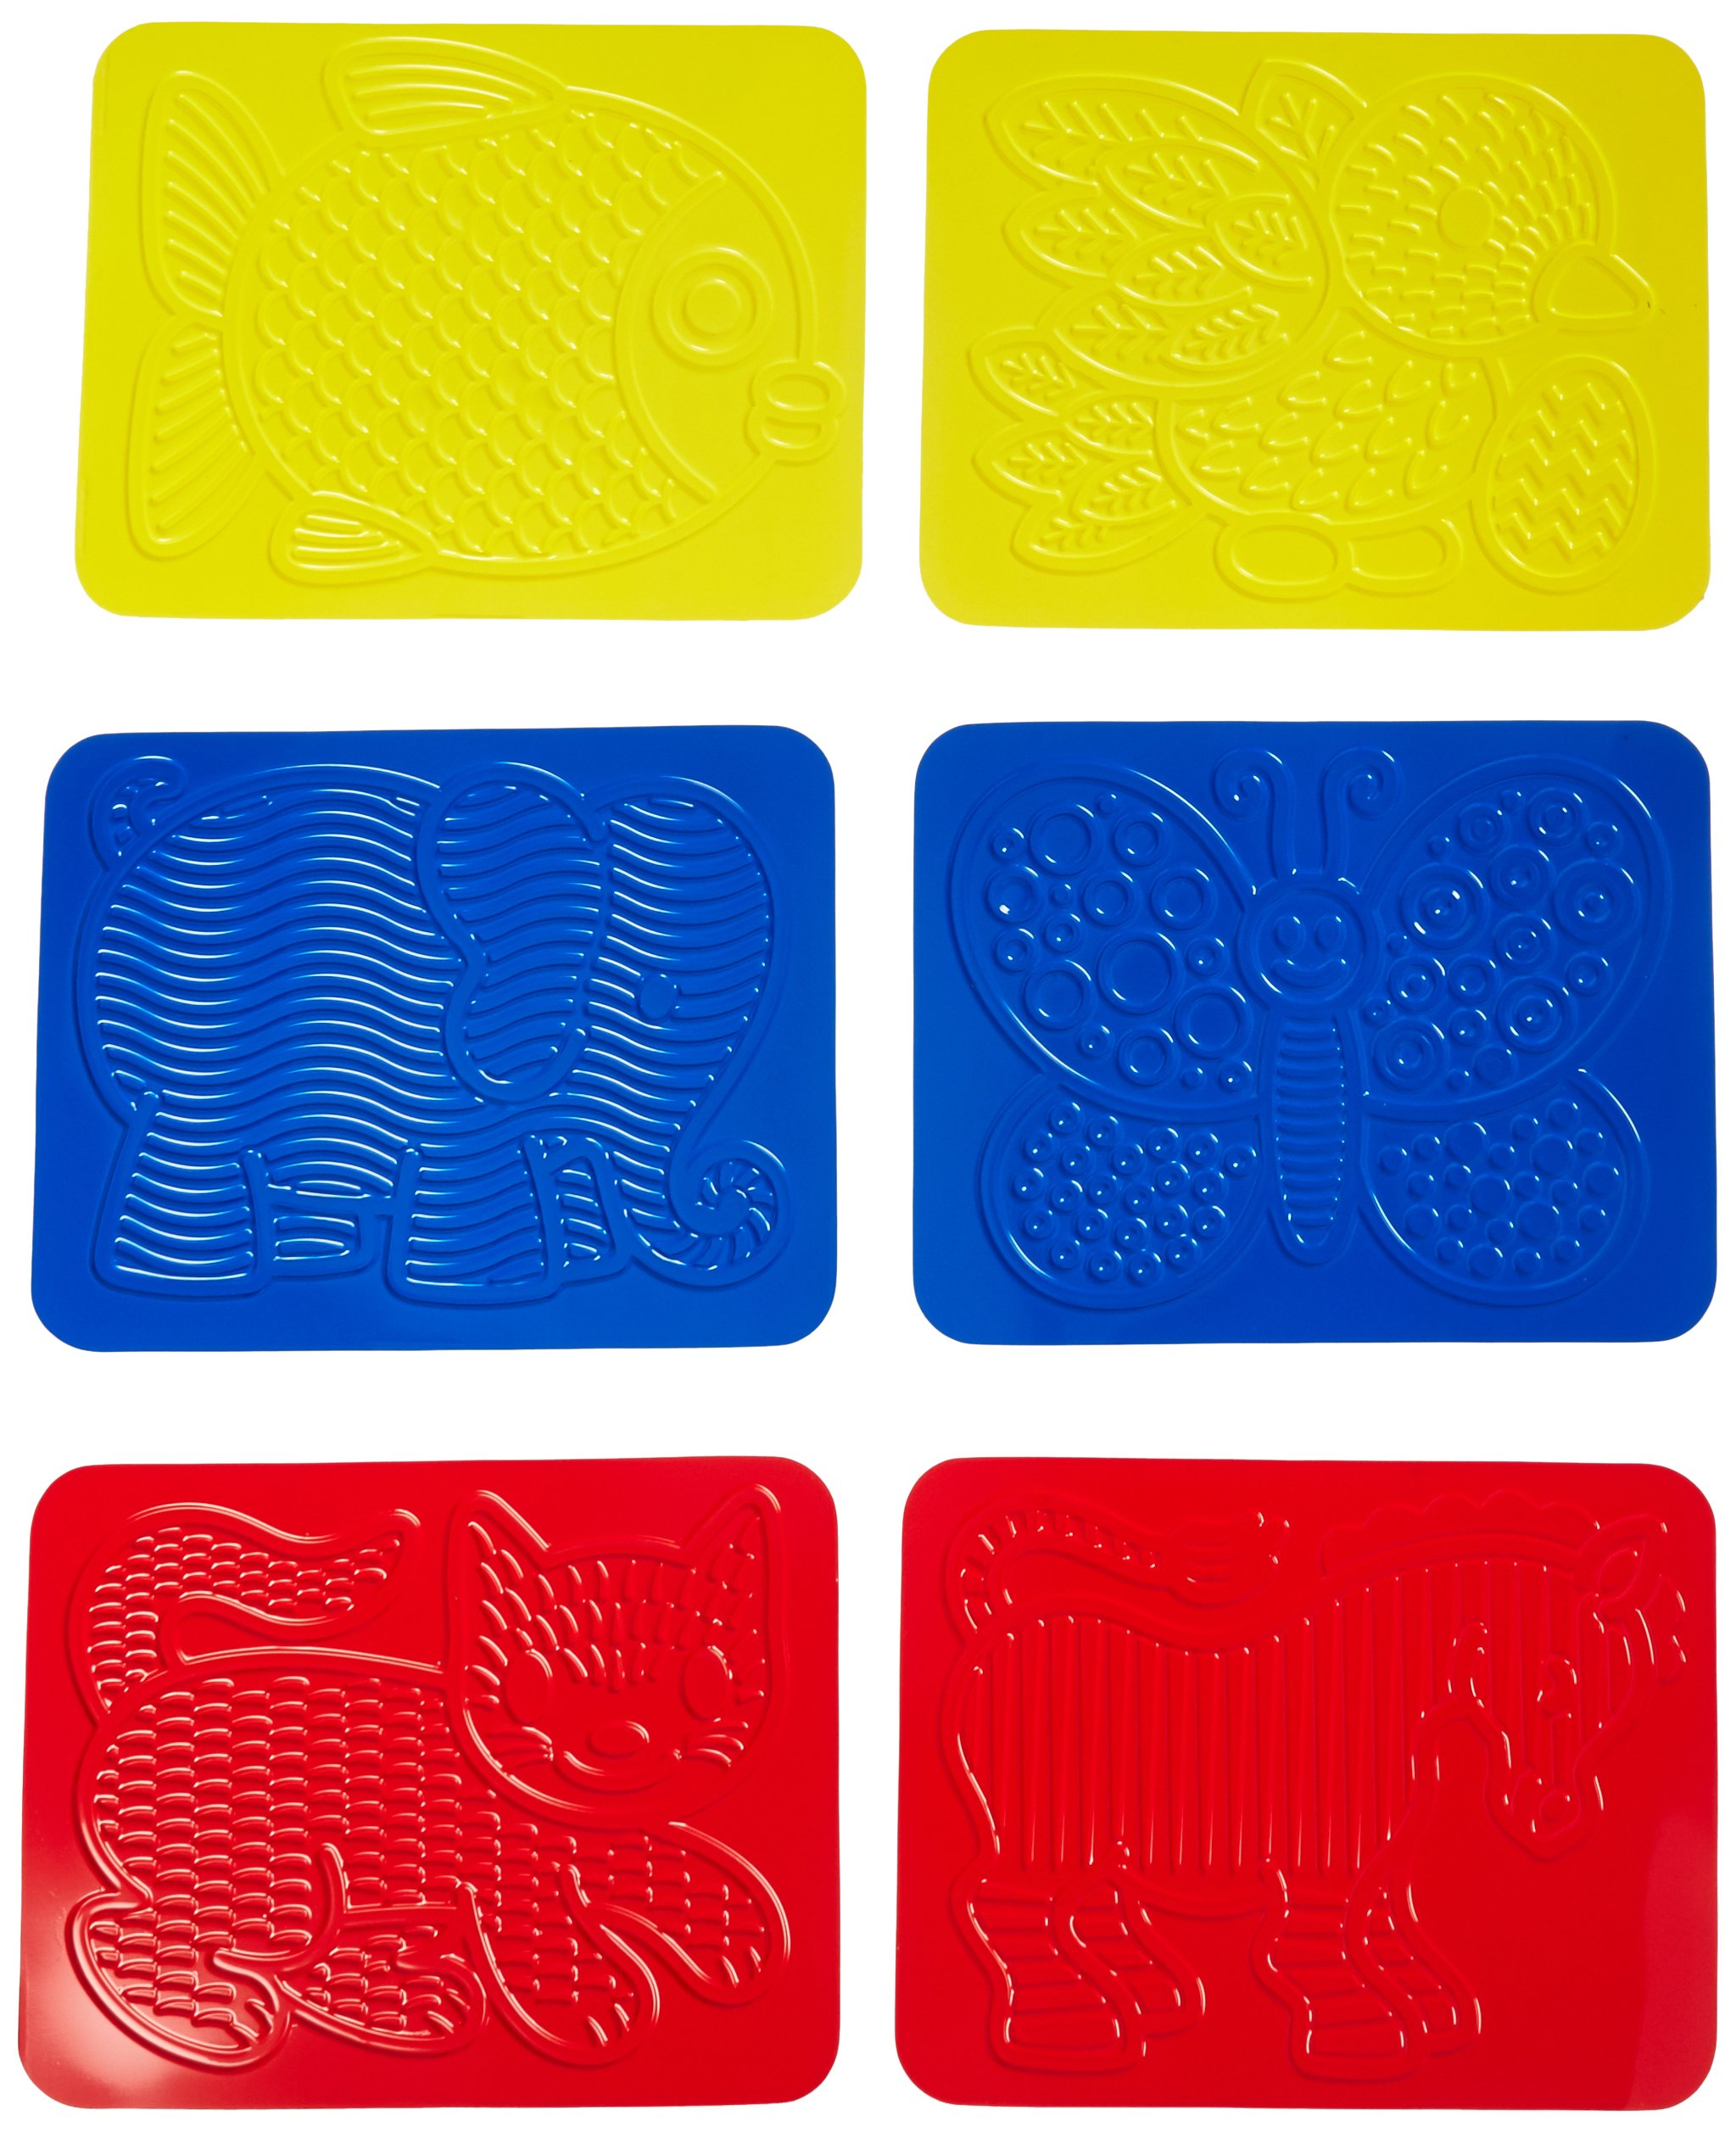 Roylco Junior Animal Rubbing Plates with Guide, 8.5'' x 11'', Set of 6